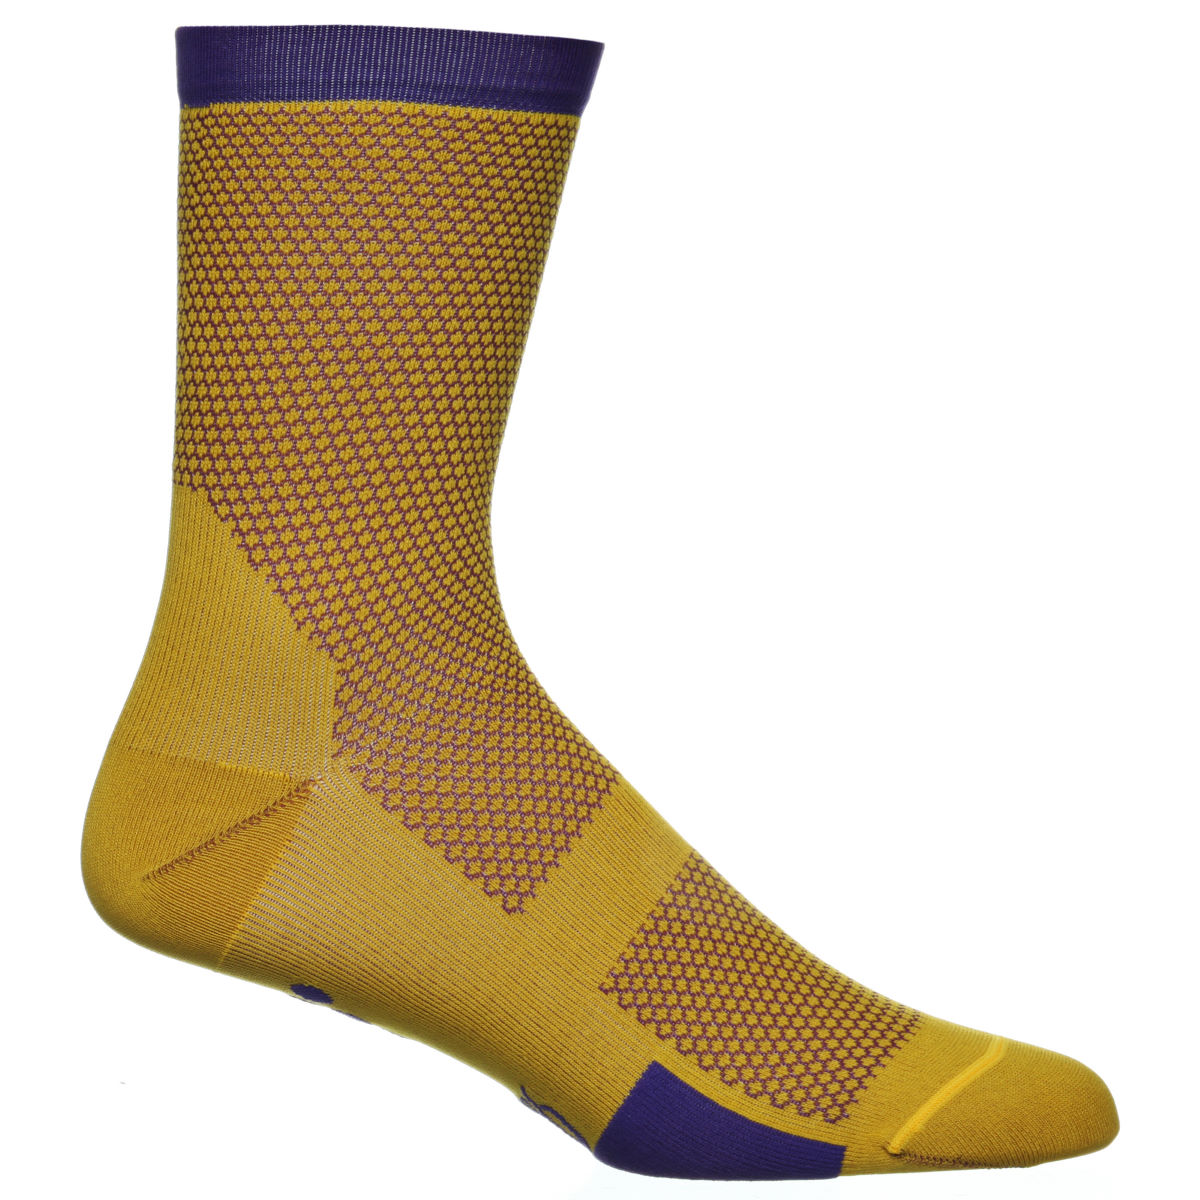 Chaussettes Isadore Mullholand Climbers - L/XL Yellow/Purple